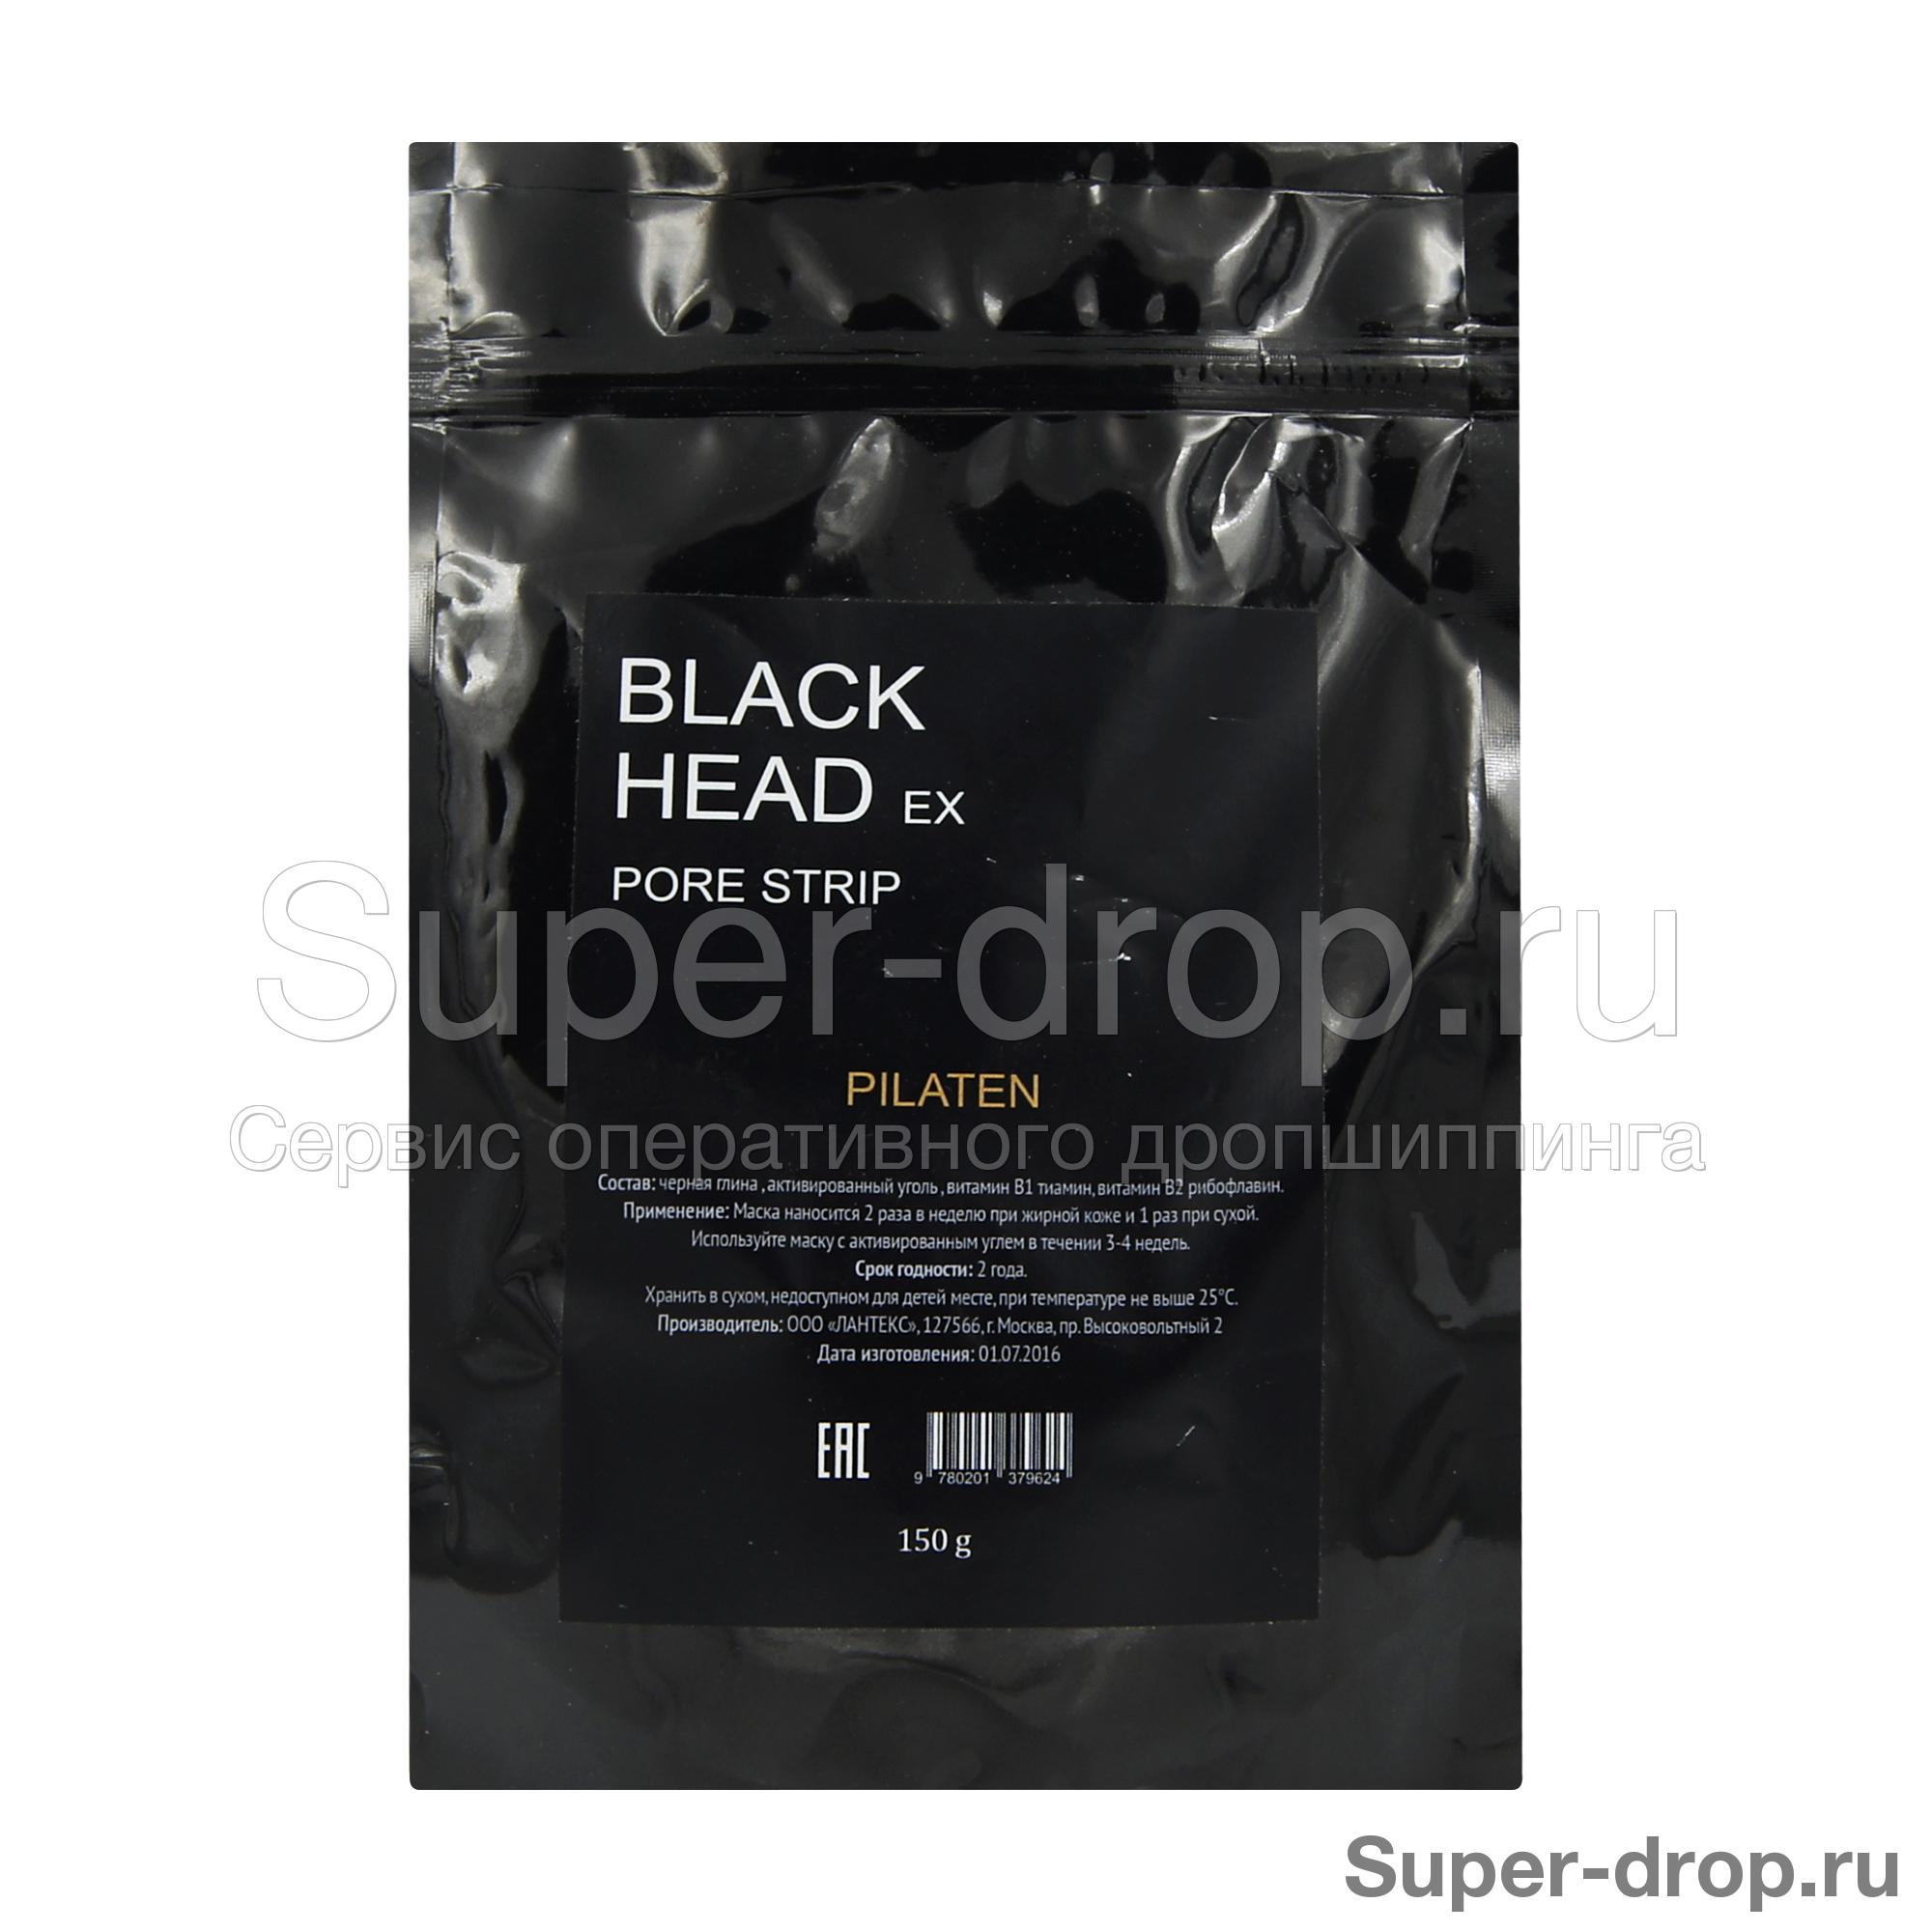 Очищающая маска для лица Black Mask Pilaten (150 гр)